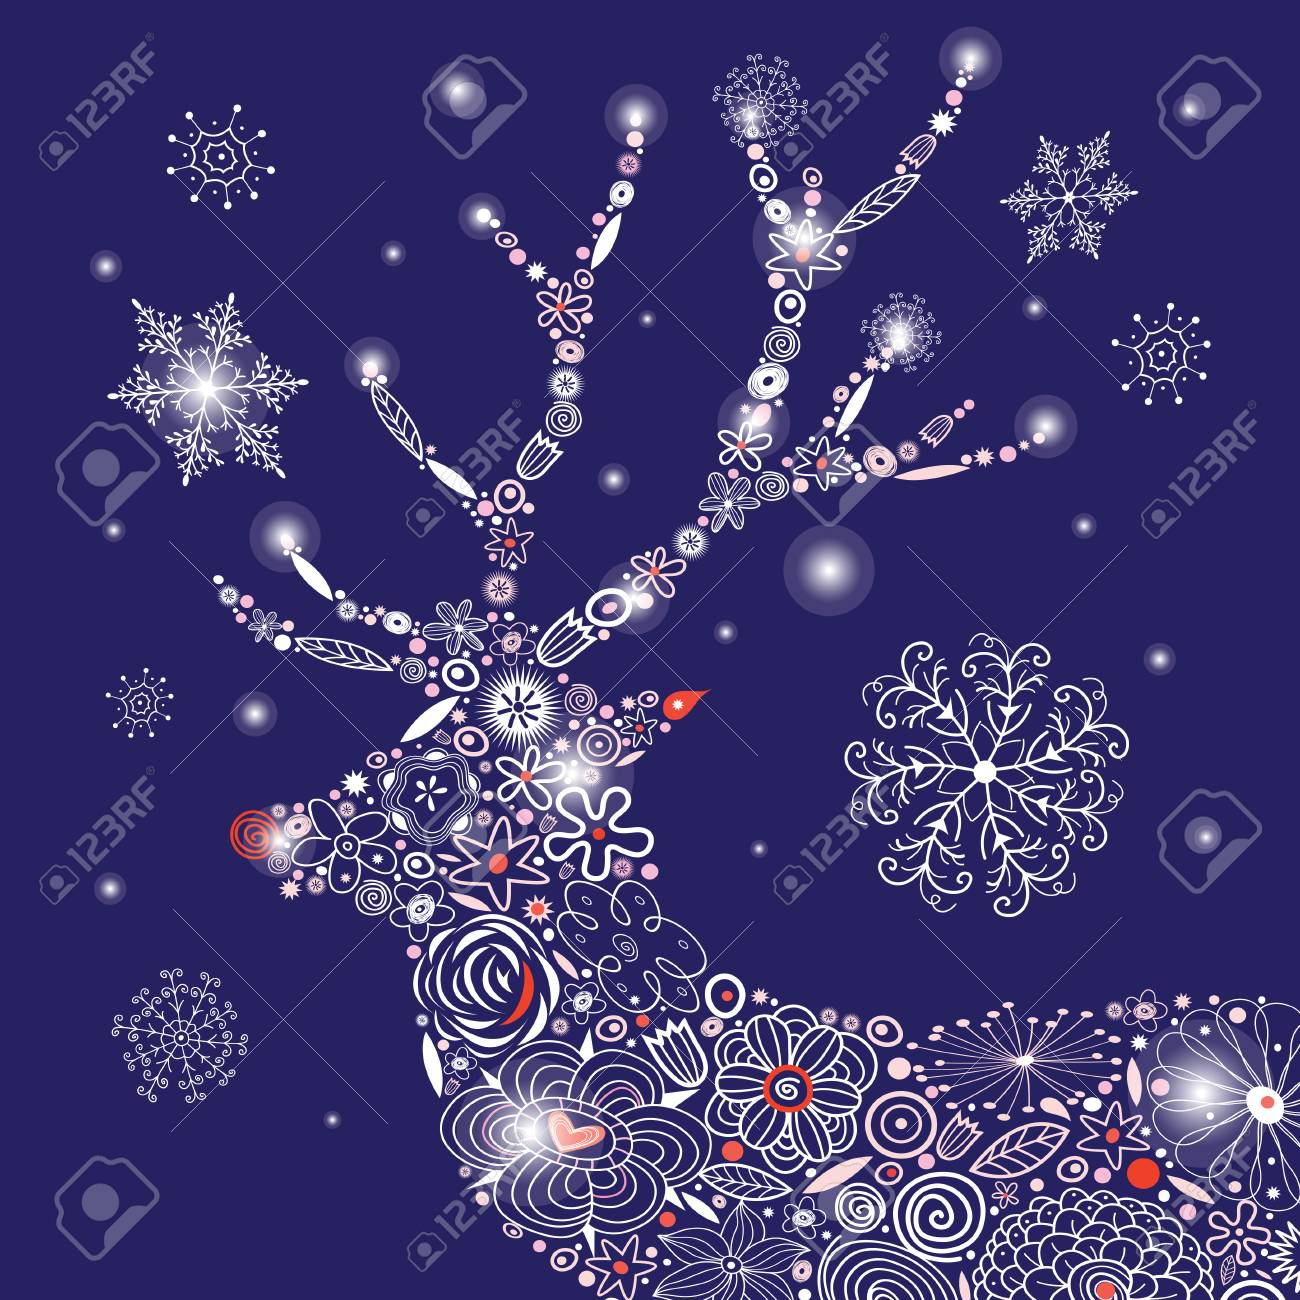 christmas ornamental deer portrait on a dark blue background royalty free cliparts vectors and stock illustration image 82064400 christmas ornamental deer portrait on a dark blue background